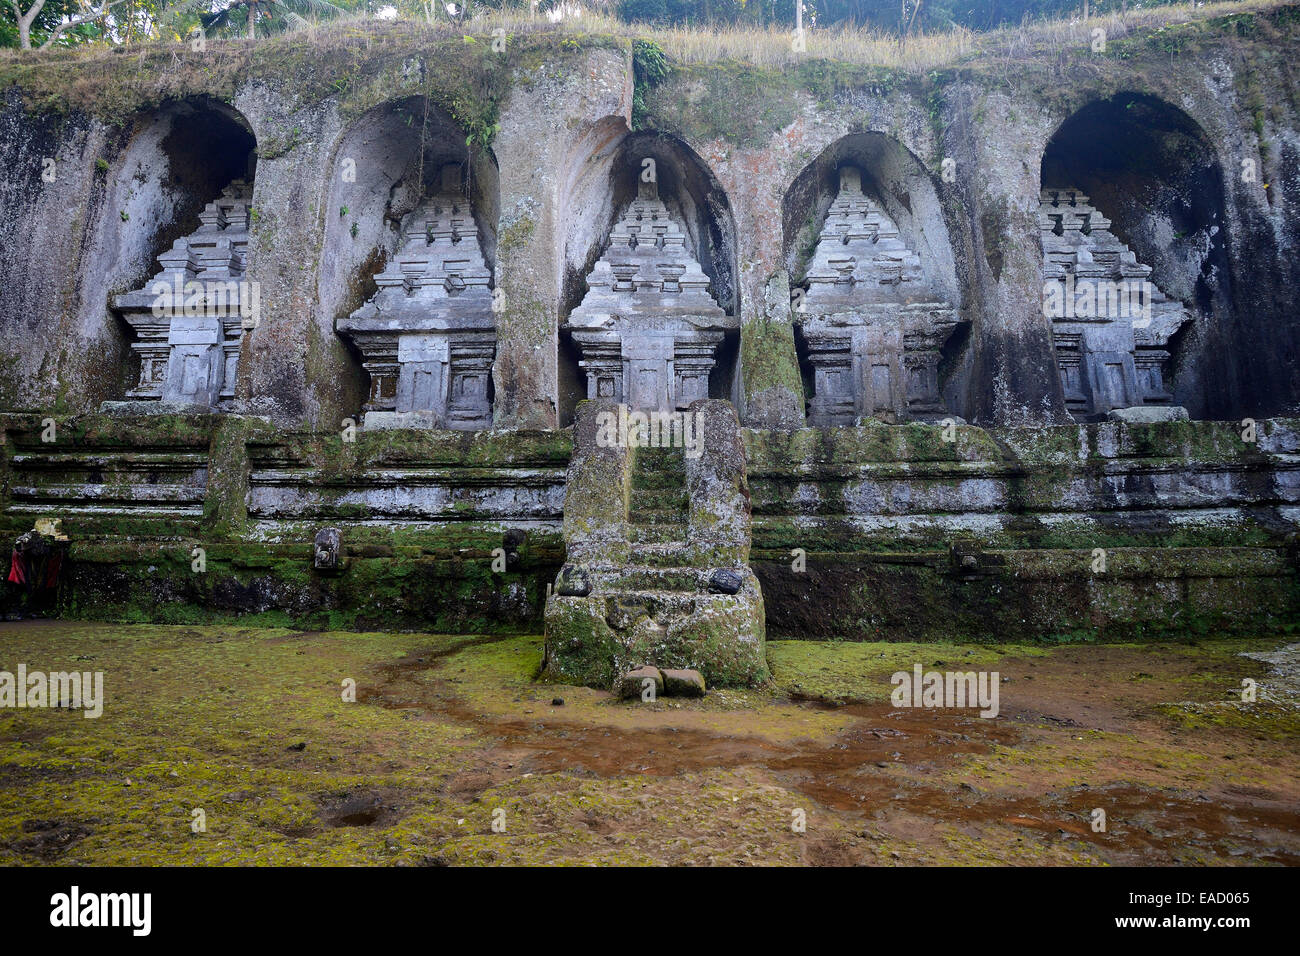 Rock shrines in the Gunung Kawi source temple, Bali, Indonesia - Stock Image